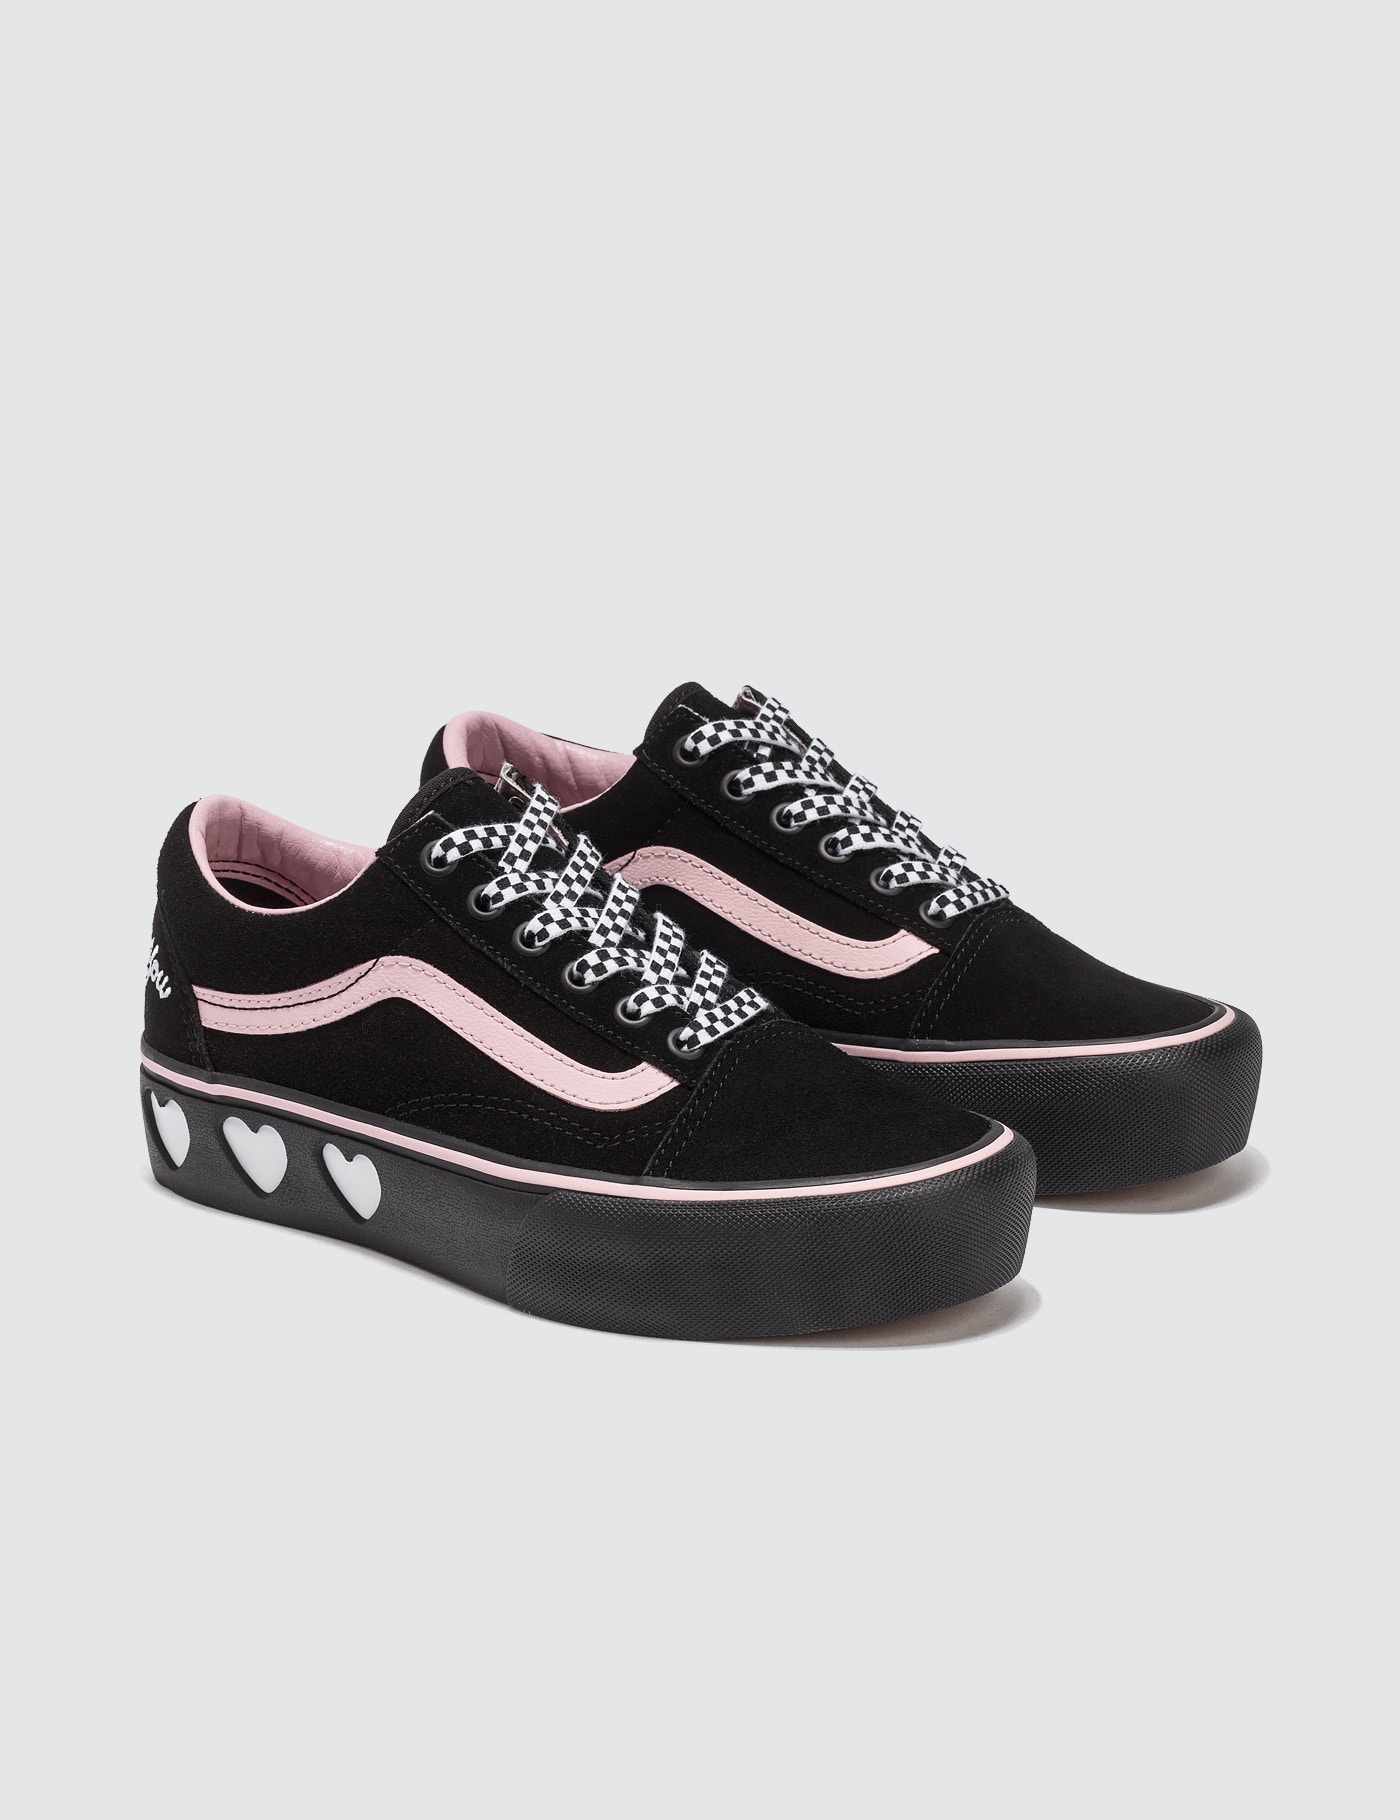 3543c9a86a3c Buy Original Vans Lazy Oaf x Old Skool Platform at Indonesia